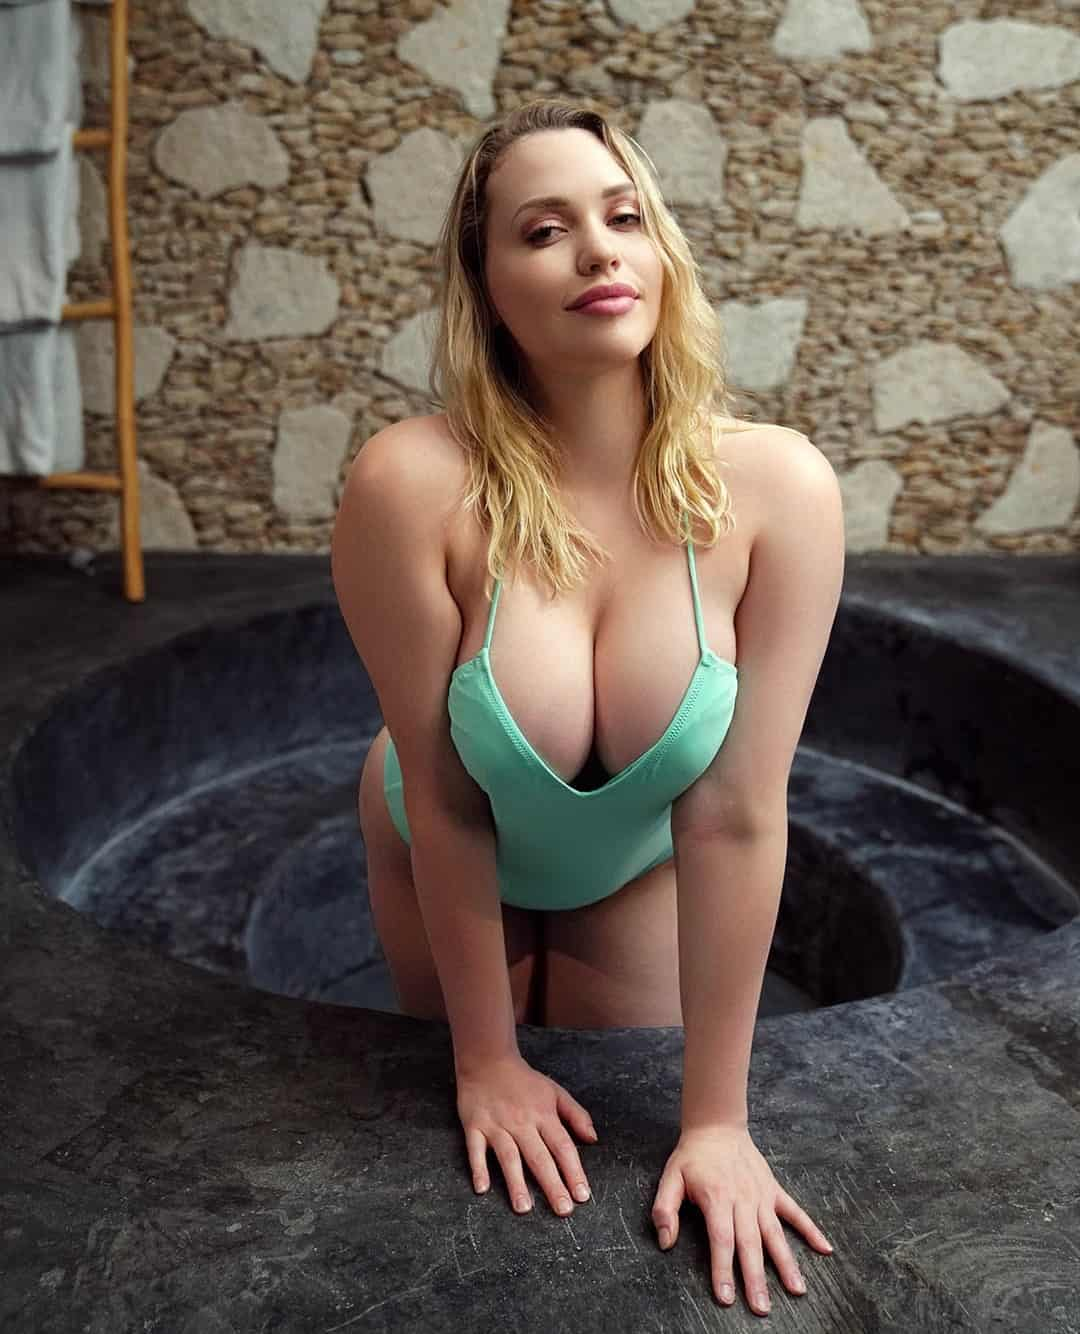 Mia Malkova Hot & Sexy Photos- Sexy Lingerie, Swimsuit Images in HD